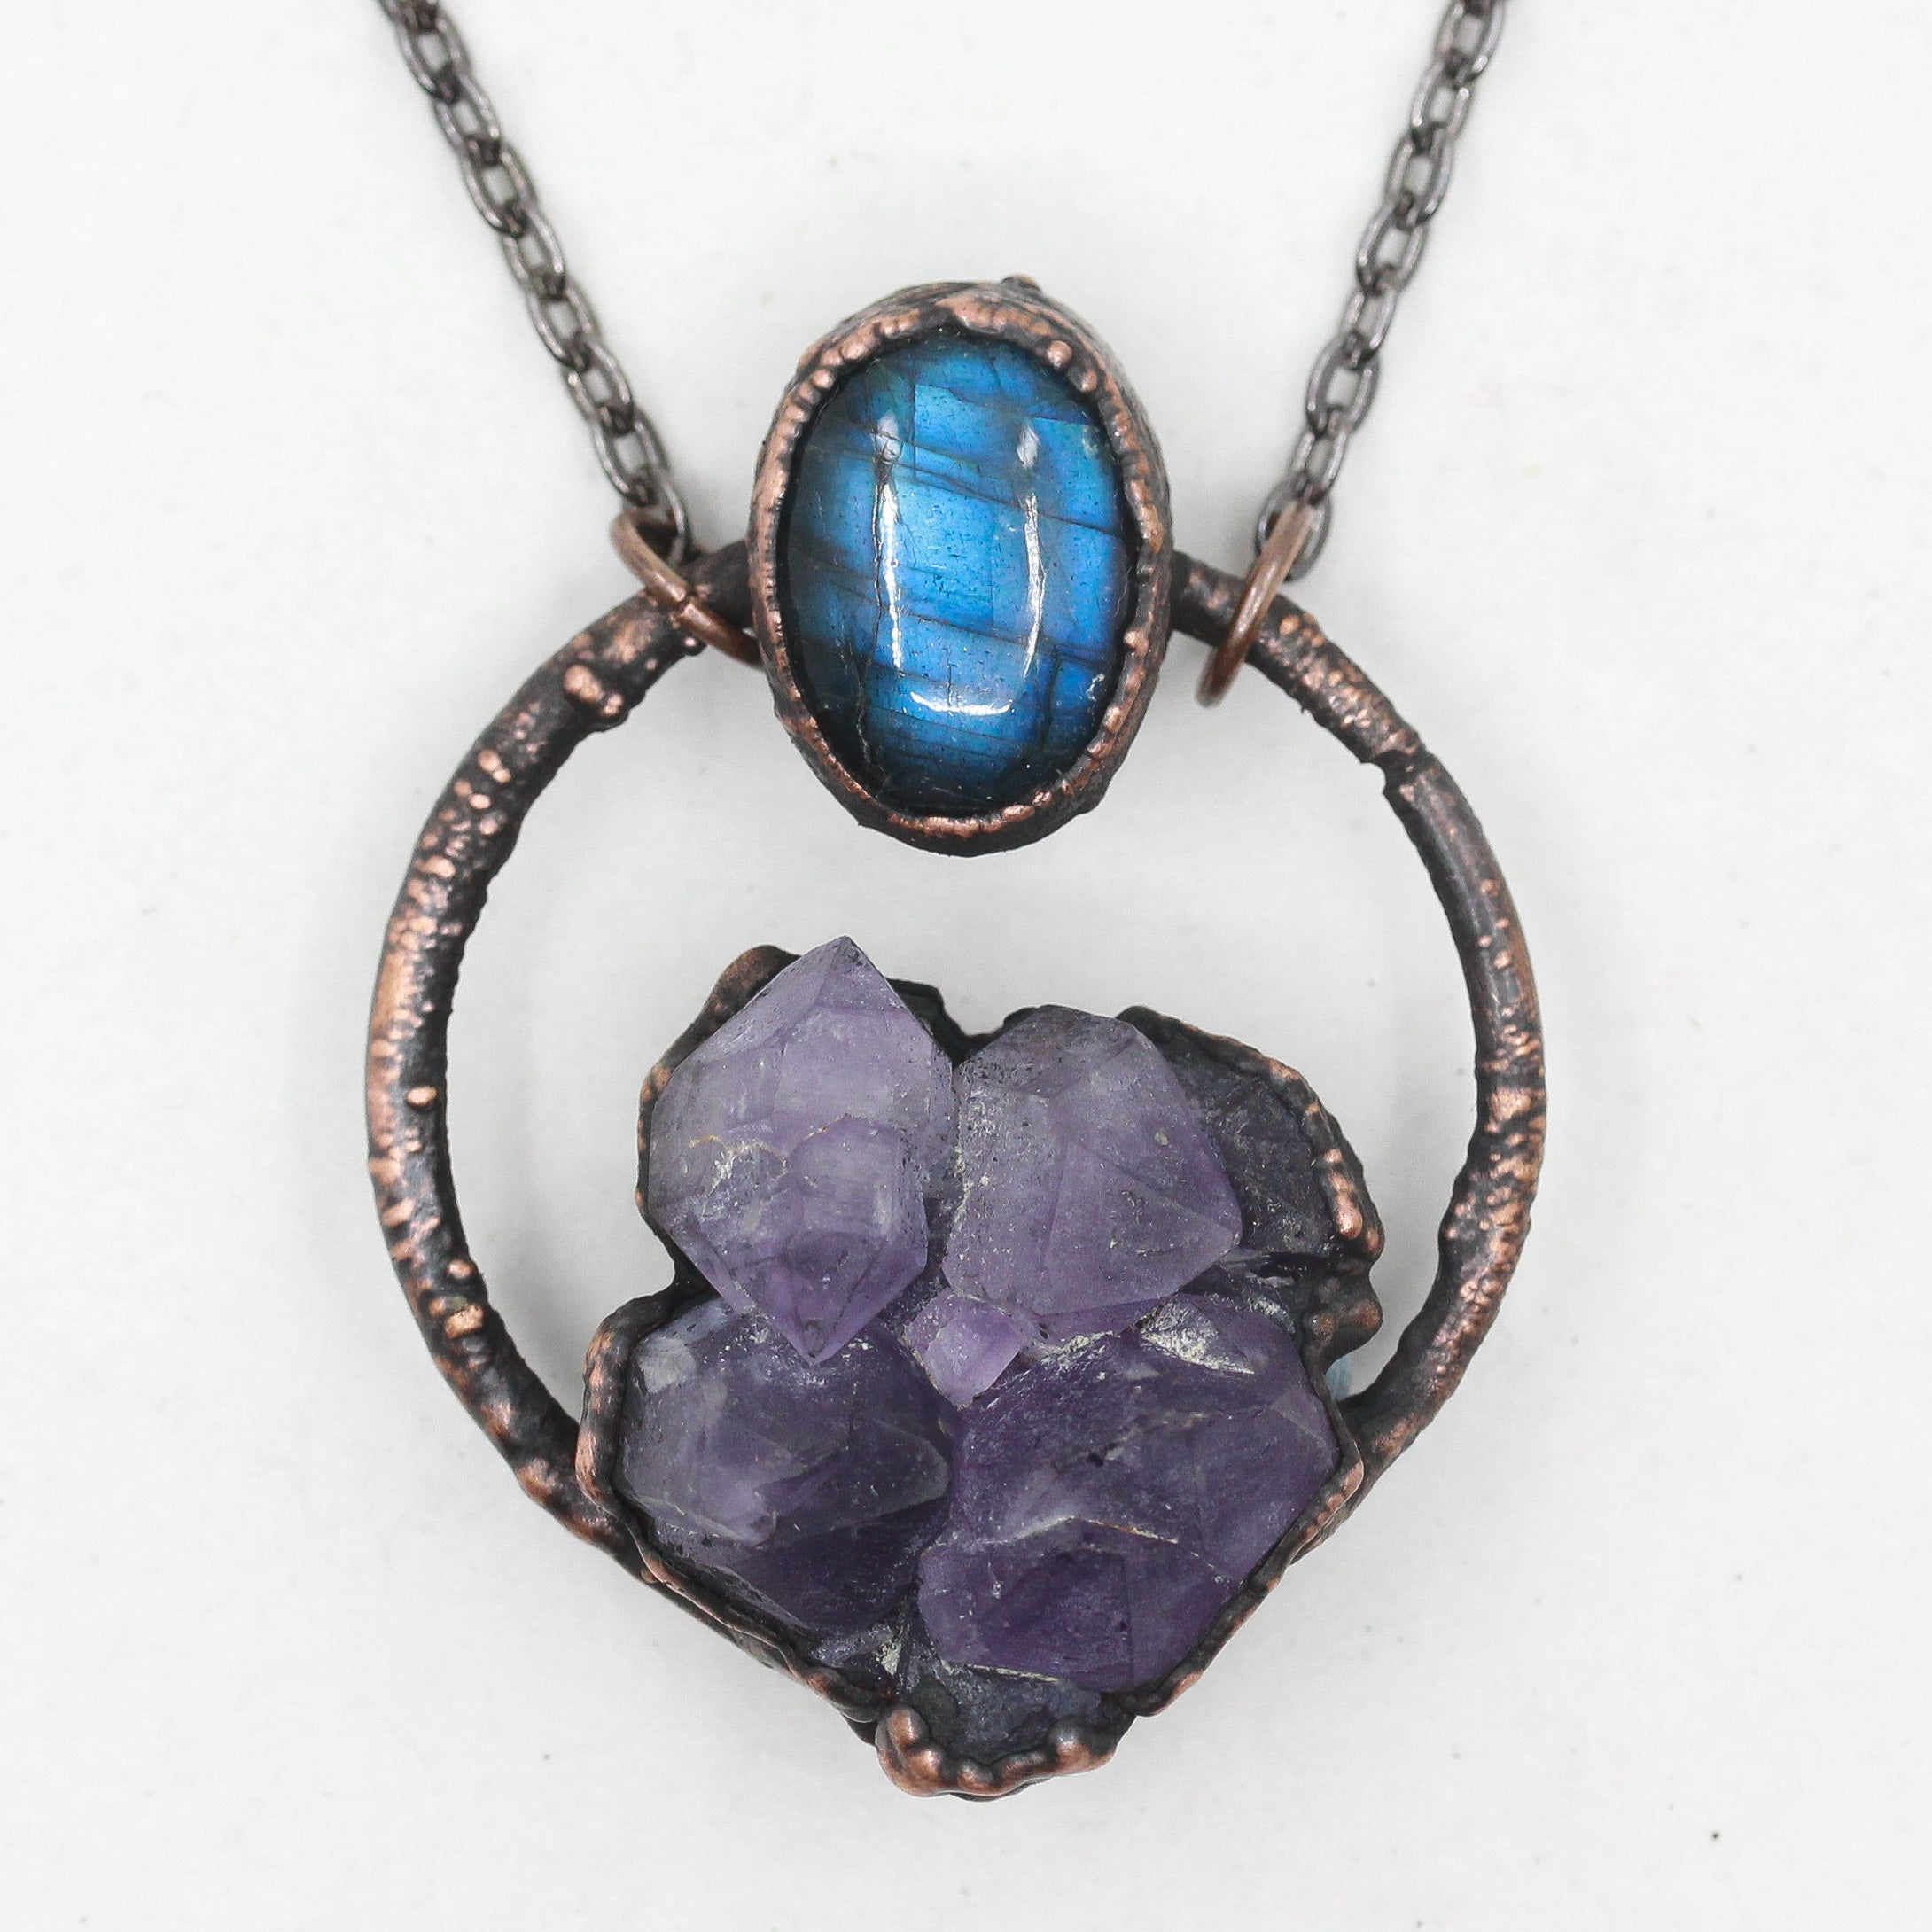 Electroformed Raw Amethyst & Labradorite Crystal Necklace